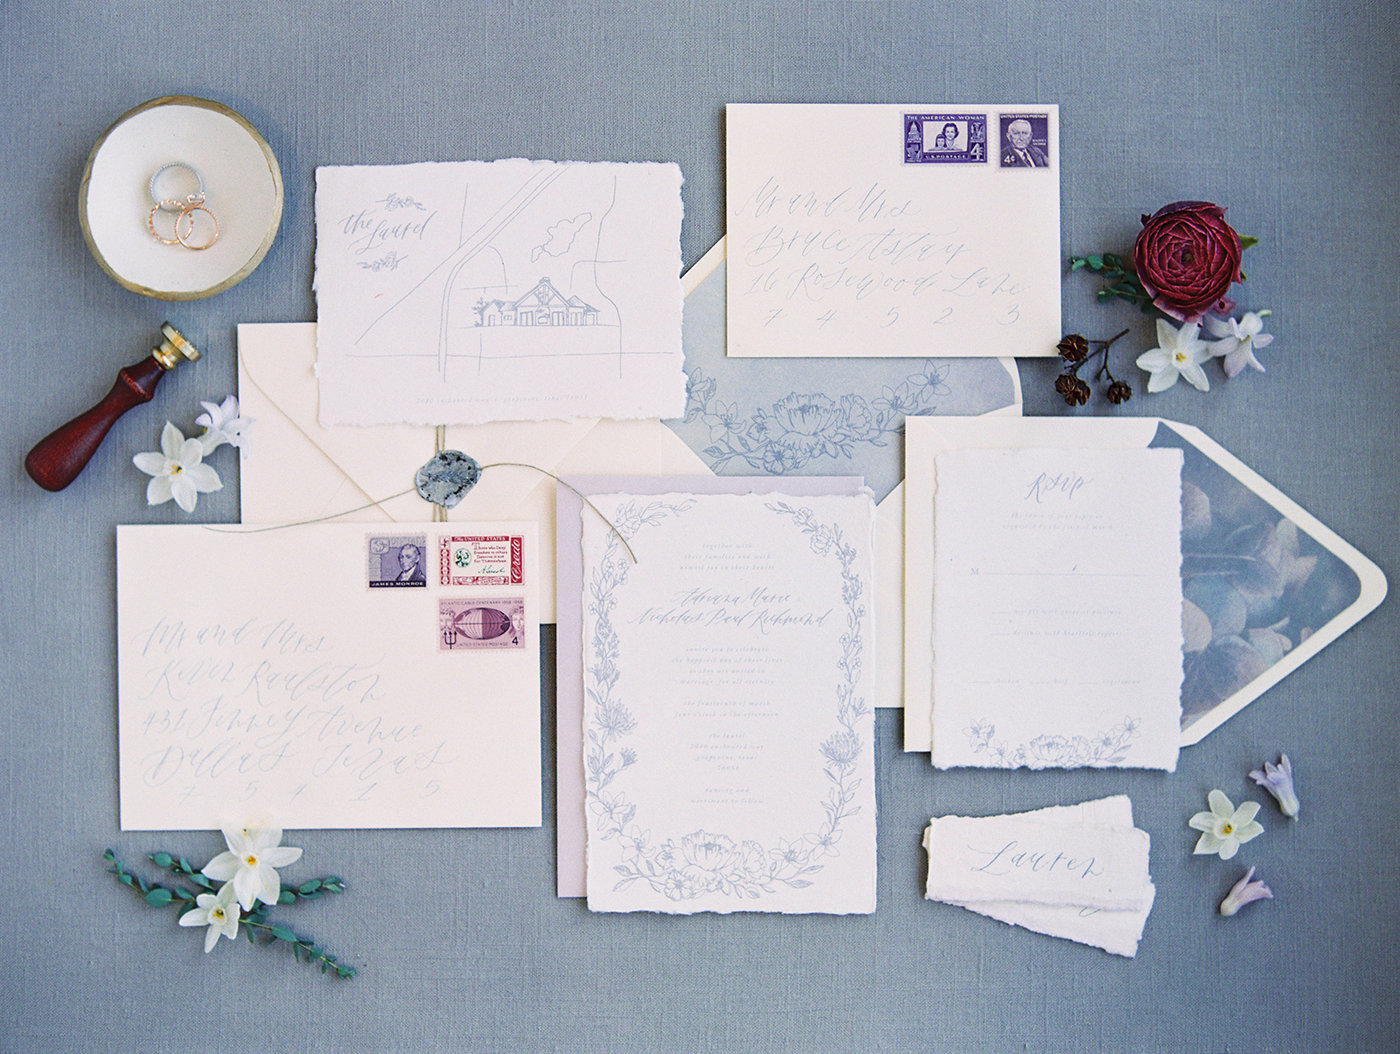 Sarah Ann Design - Fine Art Wedding Invitation Design - Lavender - 00001